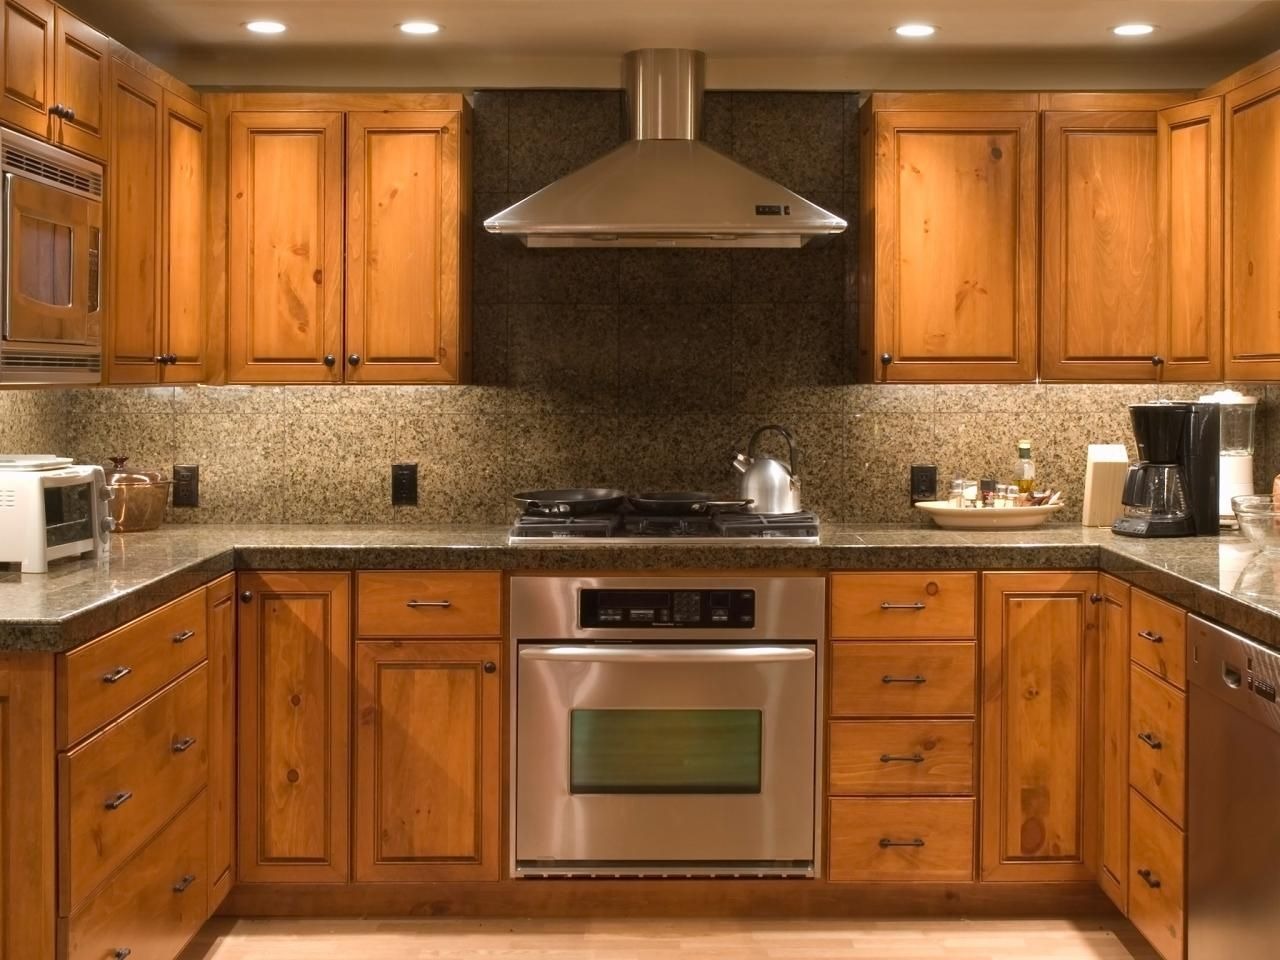 Laminate Kitchen Cabinets Pictures Options Tips Ideas Kitchen Cabinets Without Handles Unfinished Kitchen Cabinets Kitchen Cabinets